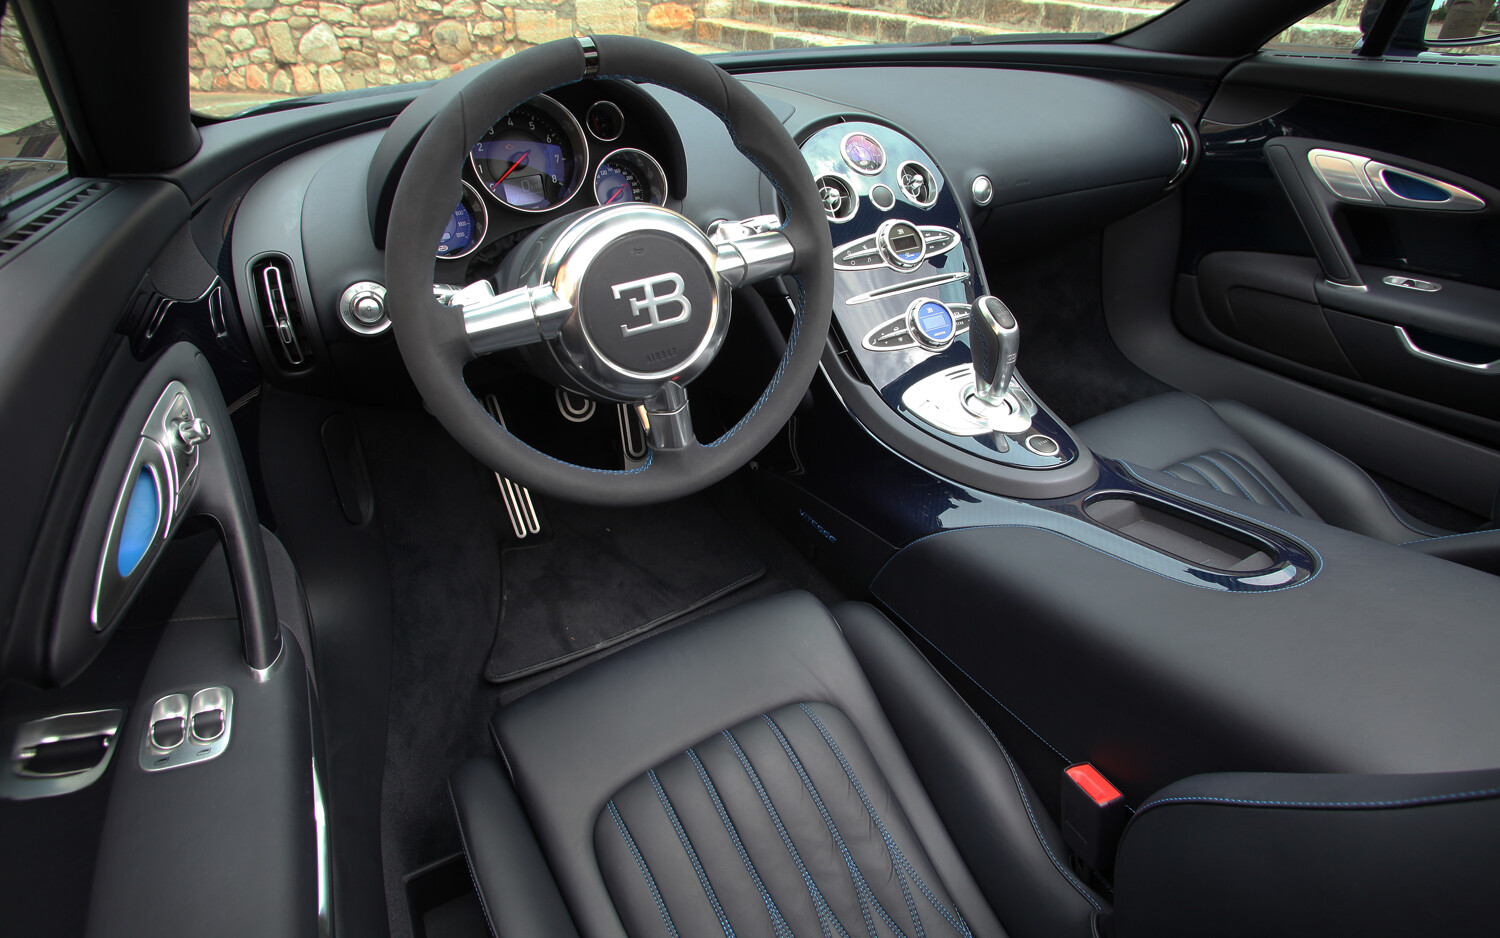 2013 bugatti veyron grand sport vitesse bilgiustam. Black Bedroom Furniture Sets. Home Design Ideas